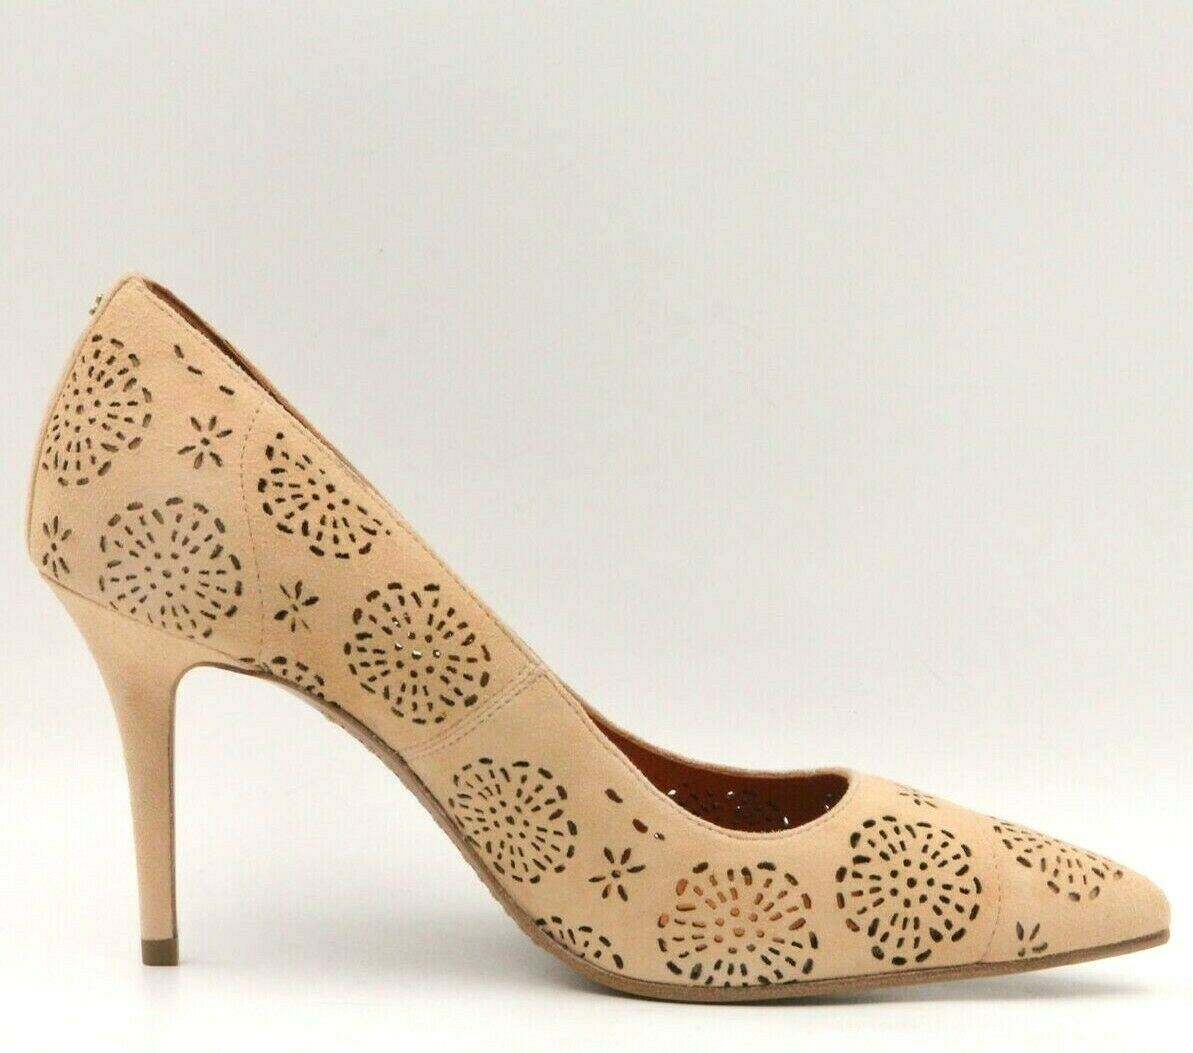 da877c9c8fc Details about COACH Waverly 85MM Women Stiletto Heel Pump Size US 6B  Beechwood Brown Suede